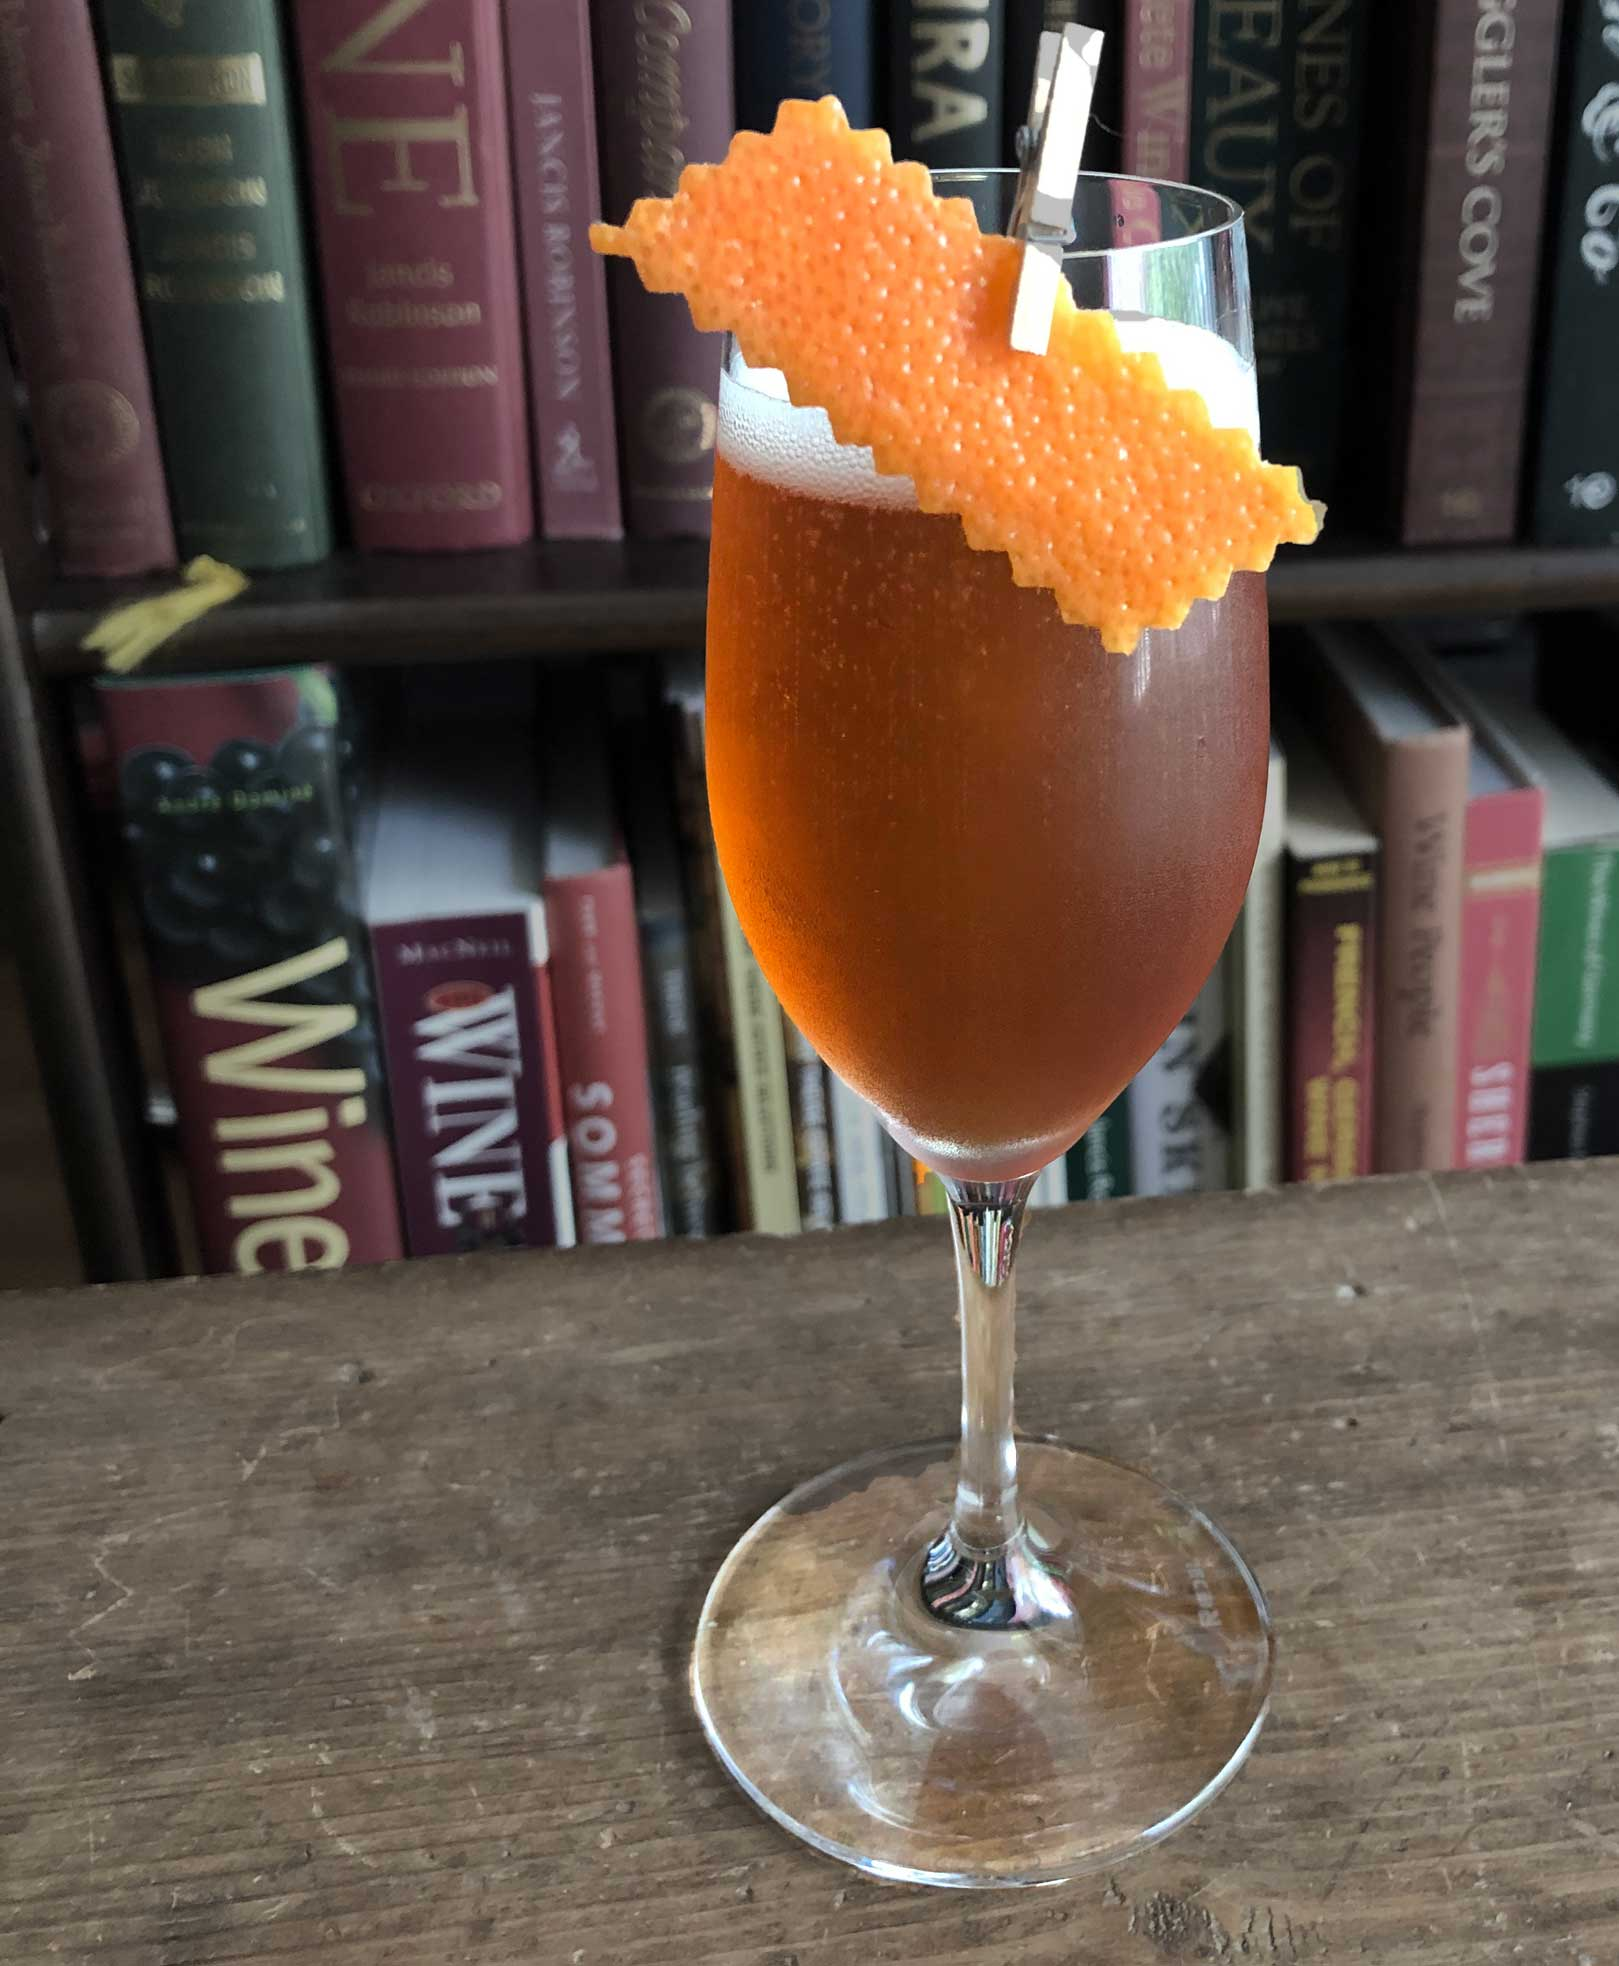 An example of the Gregorian Chant, the mixed drink (cocktail) featuring Hayman's Sloe Gin, sparkling wine, Amaro Alta Verde, and Bénédictine; photo by Lee Edwards